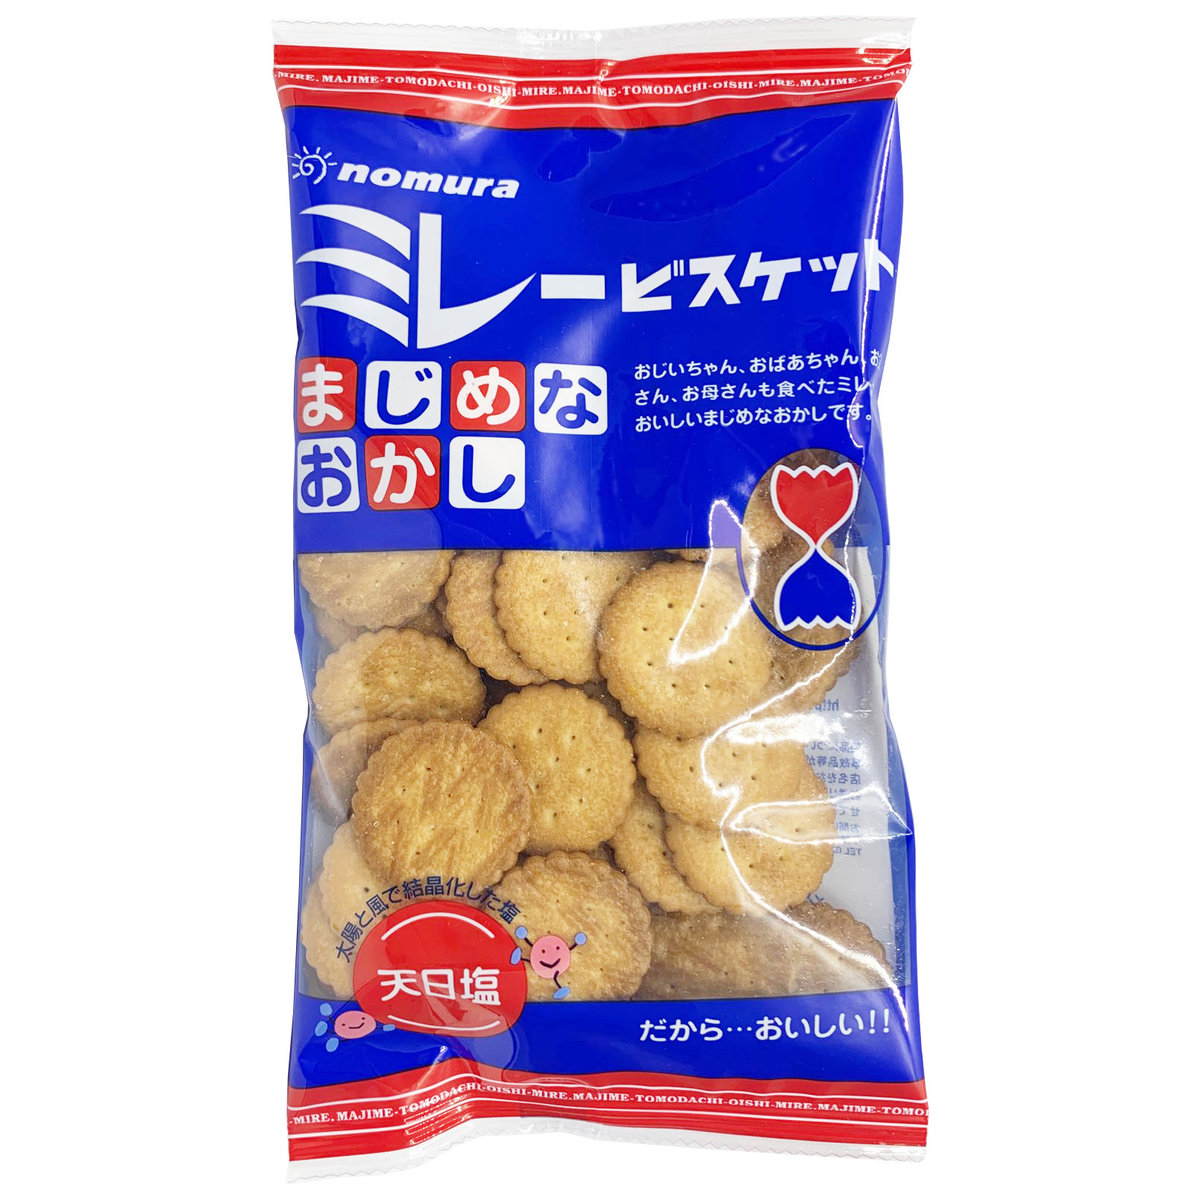 Japan Salty Biscuits 130g [Parallel Import] (EXP2020.09) (4975658000602)